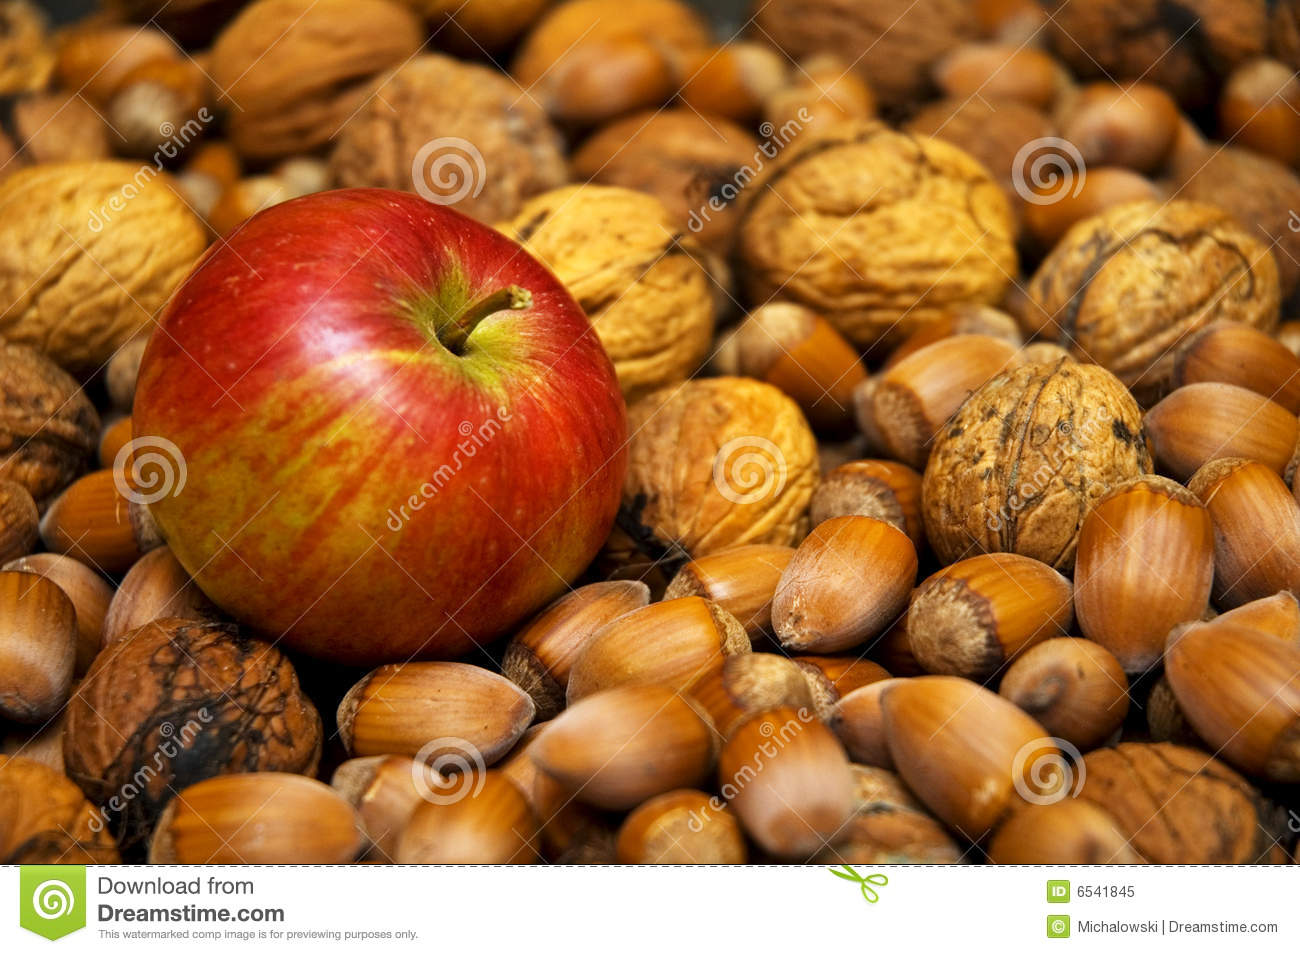 6f13f7c55b6e Apple and nuts stock image. Image of nature